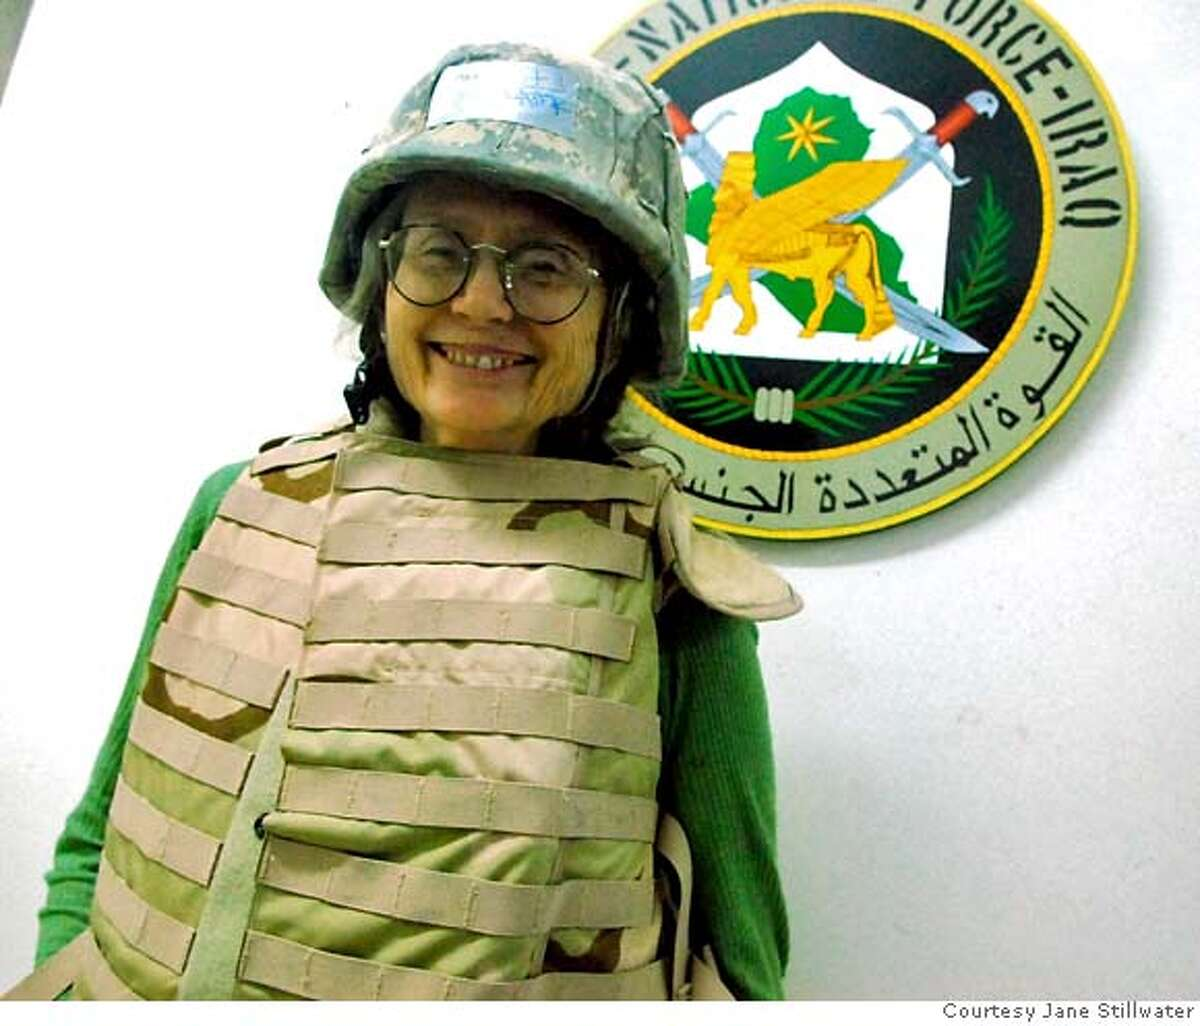 While in Iraq, blogger Jane Stillwater poses in front of an emblem of the Multi-National Forces of Iraq in a photograph that she sent home to friends and supporters in the United States. PHOTO COURTESY JANE STILLWATER.